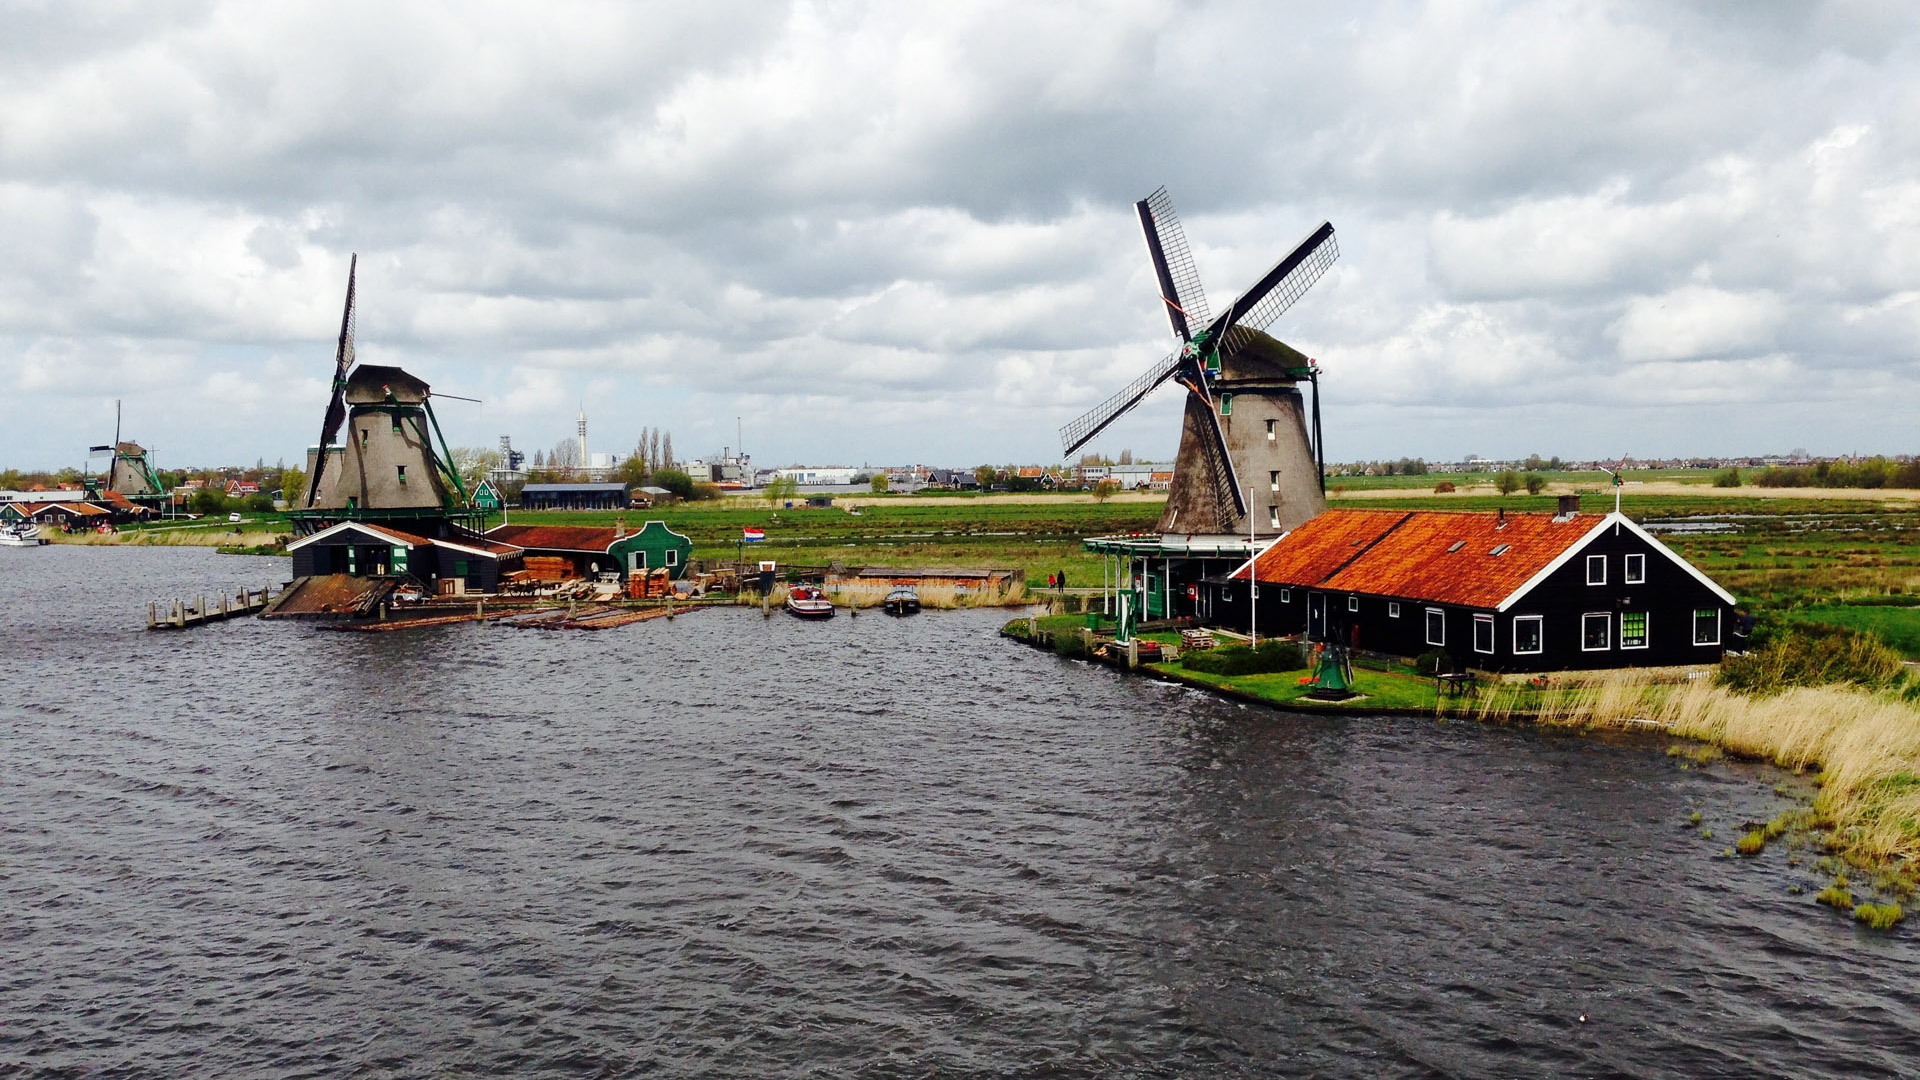 Luxury Barge Cruise in Holland